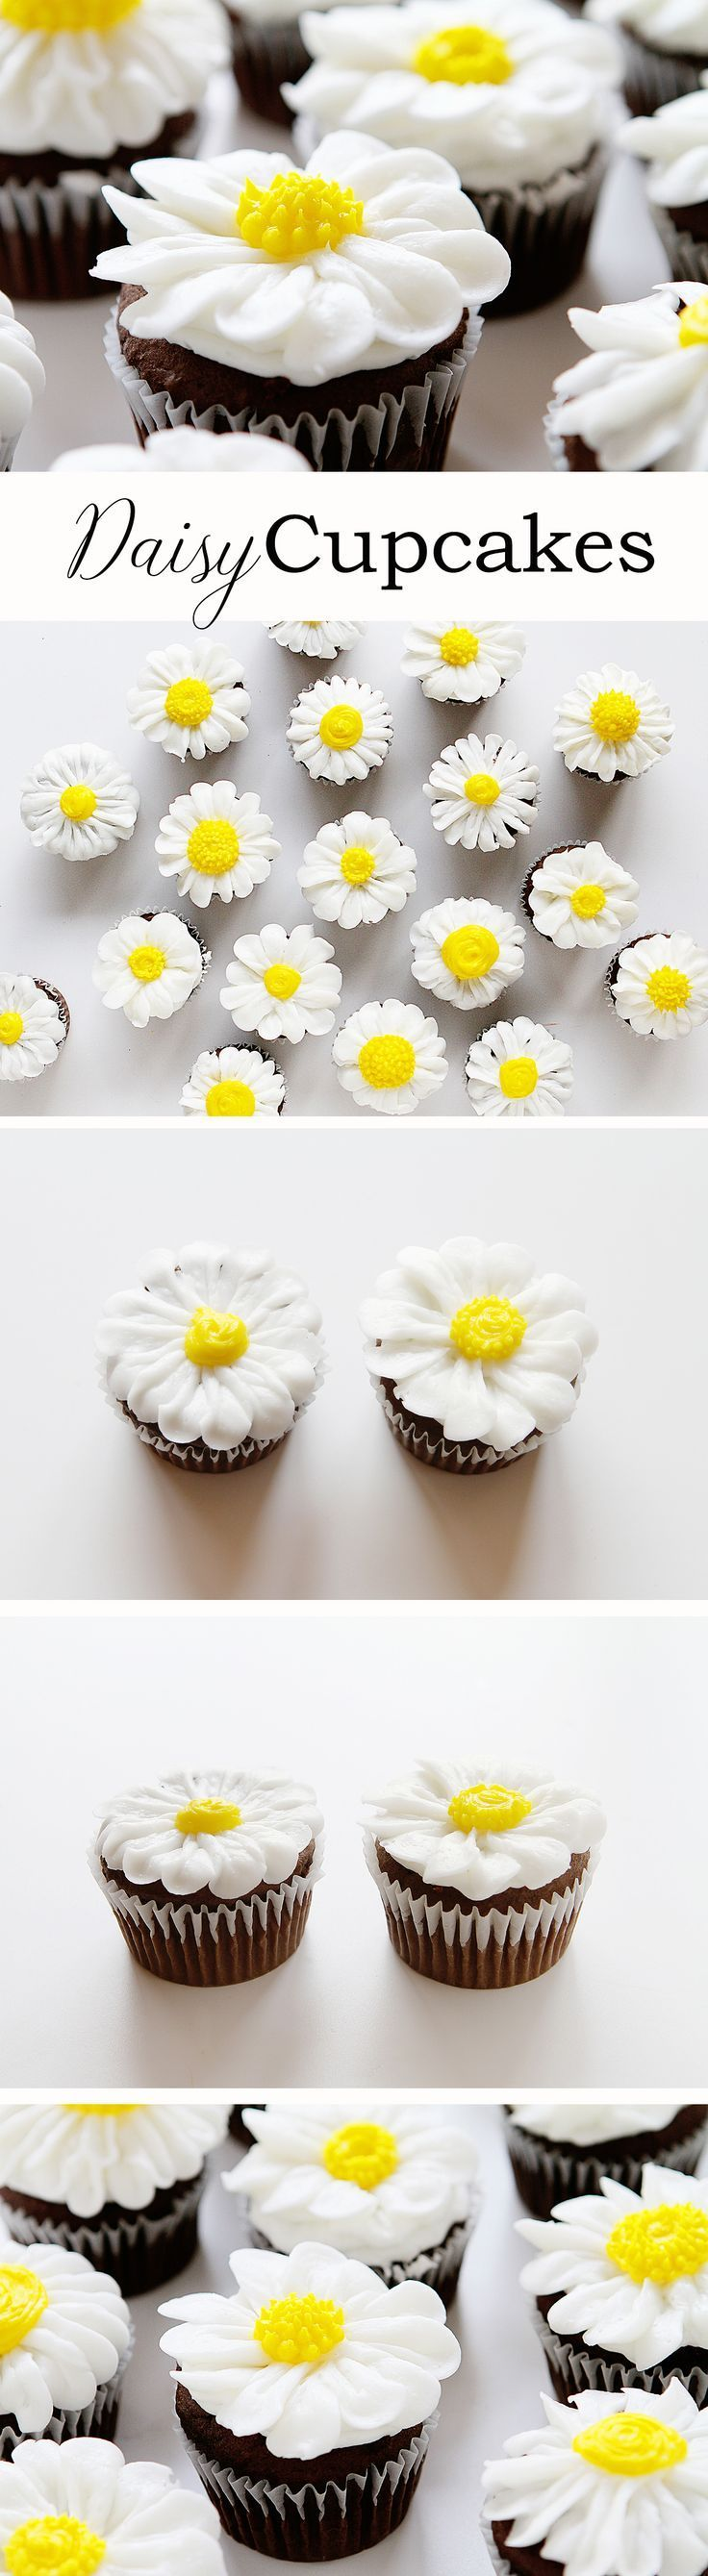 tips and tricks help to make this the EASIEST cupcake ever!